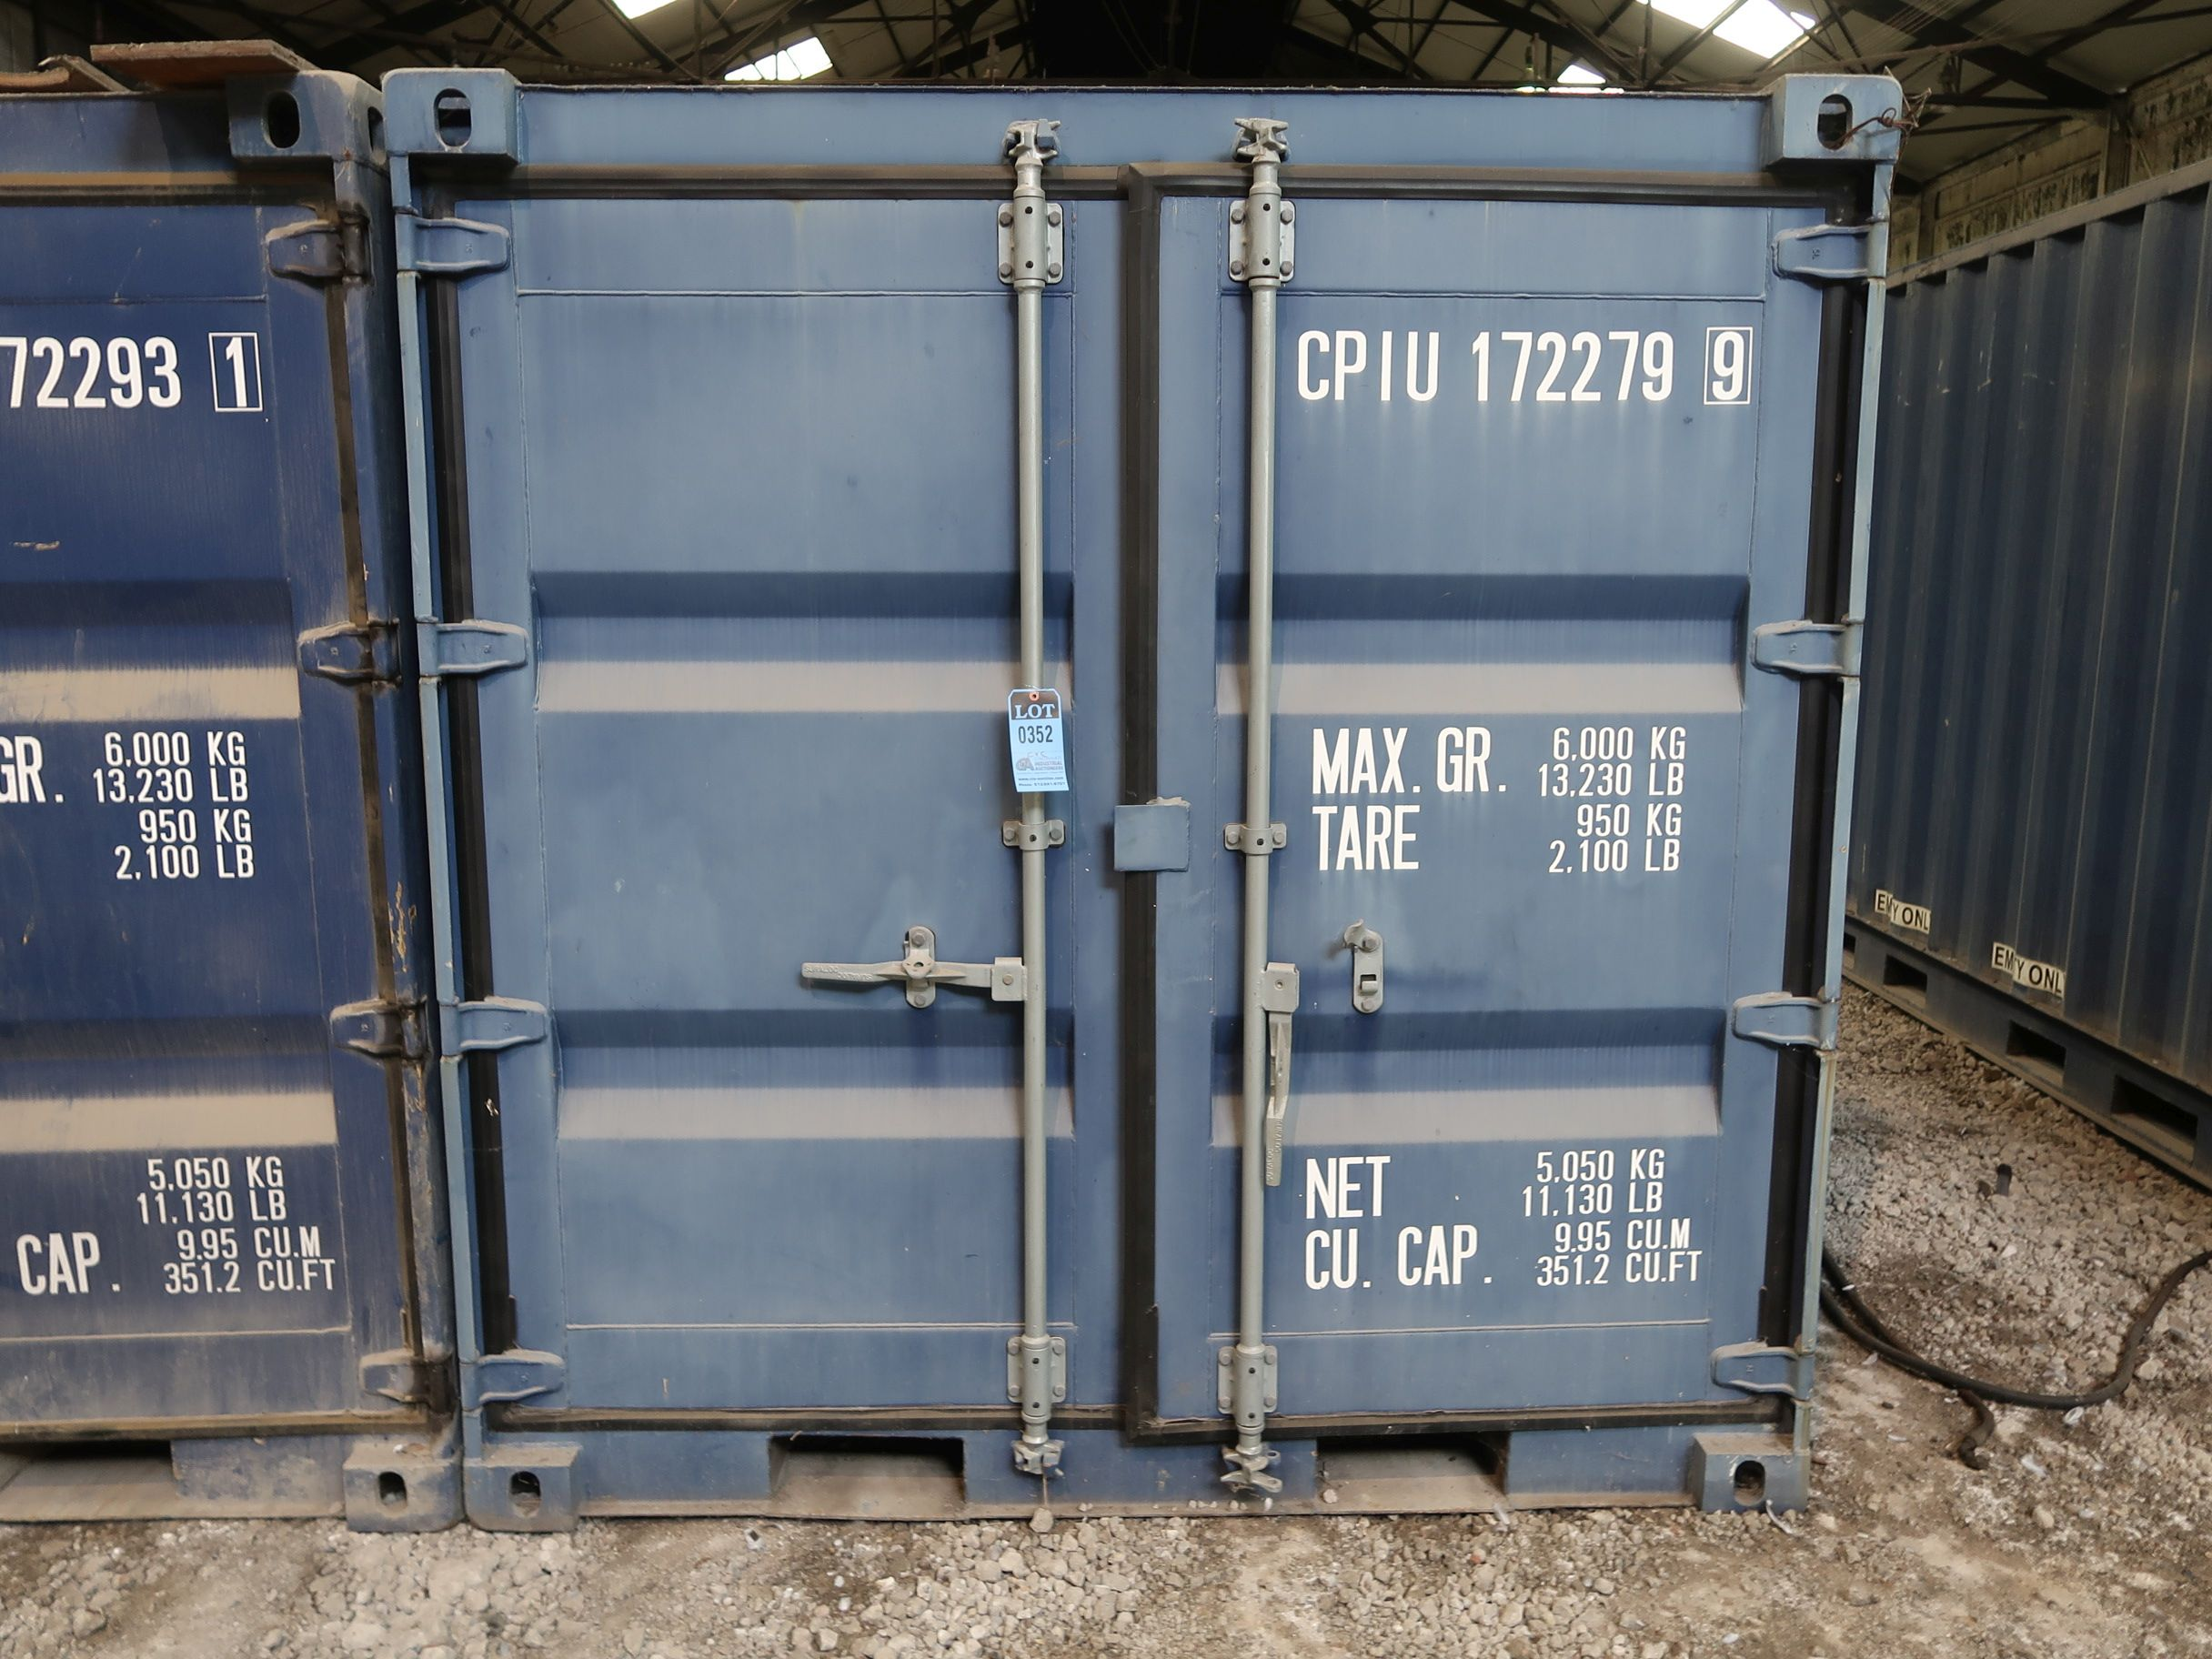 Lot 352 - 7' WIDE X 8' LONG CONEX STORAGE CONTAINER, 351 CU. FT. WITH MISCELLANEOUS STEEL PLATES